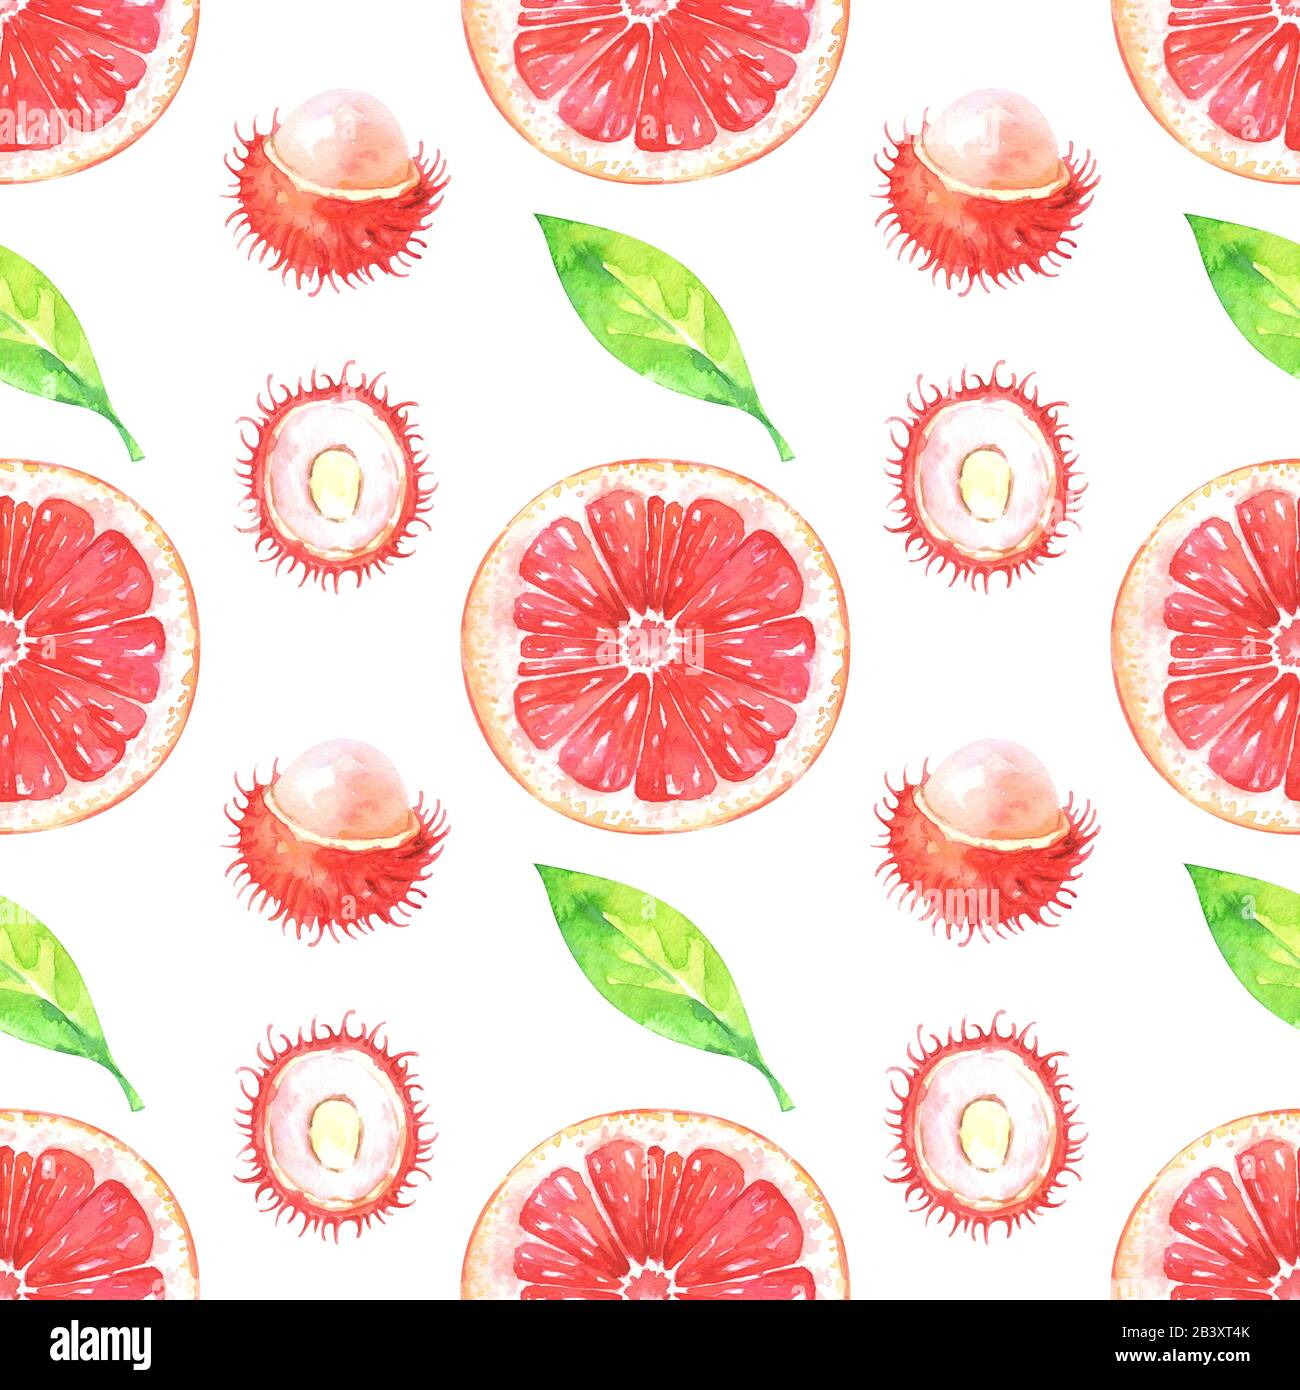 Hand painted pattern with watercolor grapefruit, rambutan and green leaves Stock Photo